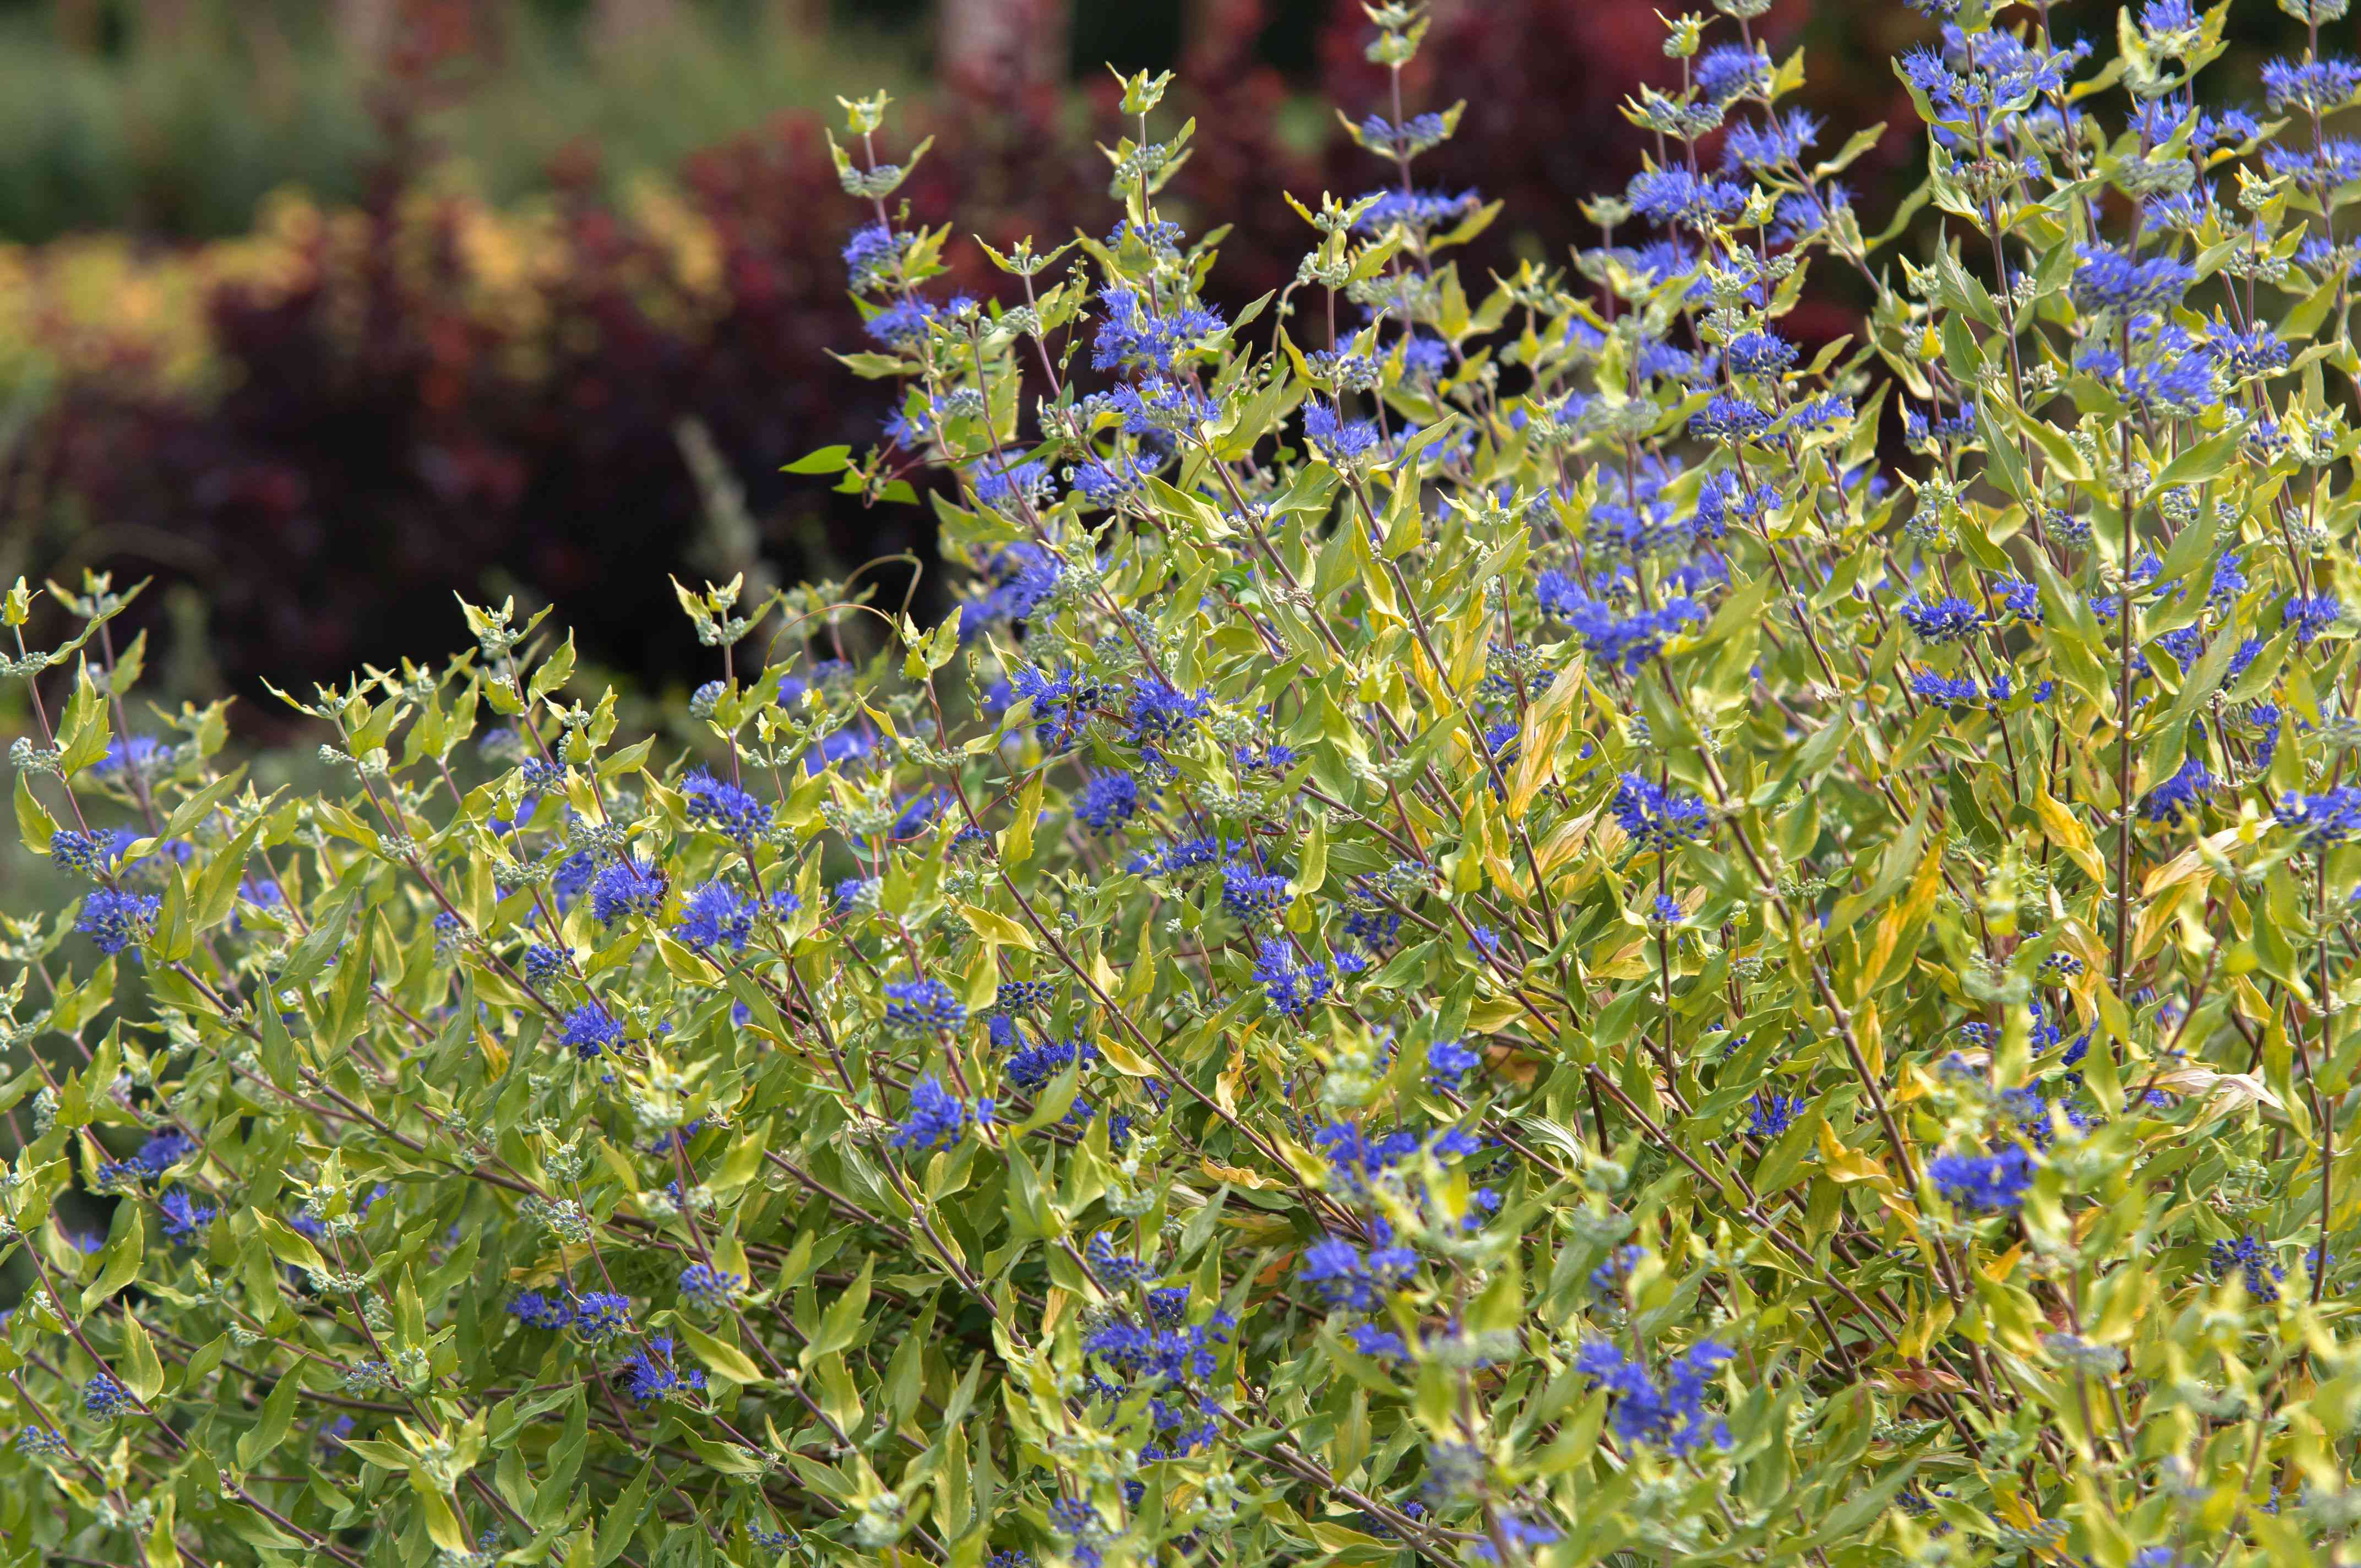 Blue beard plant with small blue-purple flowers on thin stems with yellow-green leaves